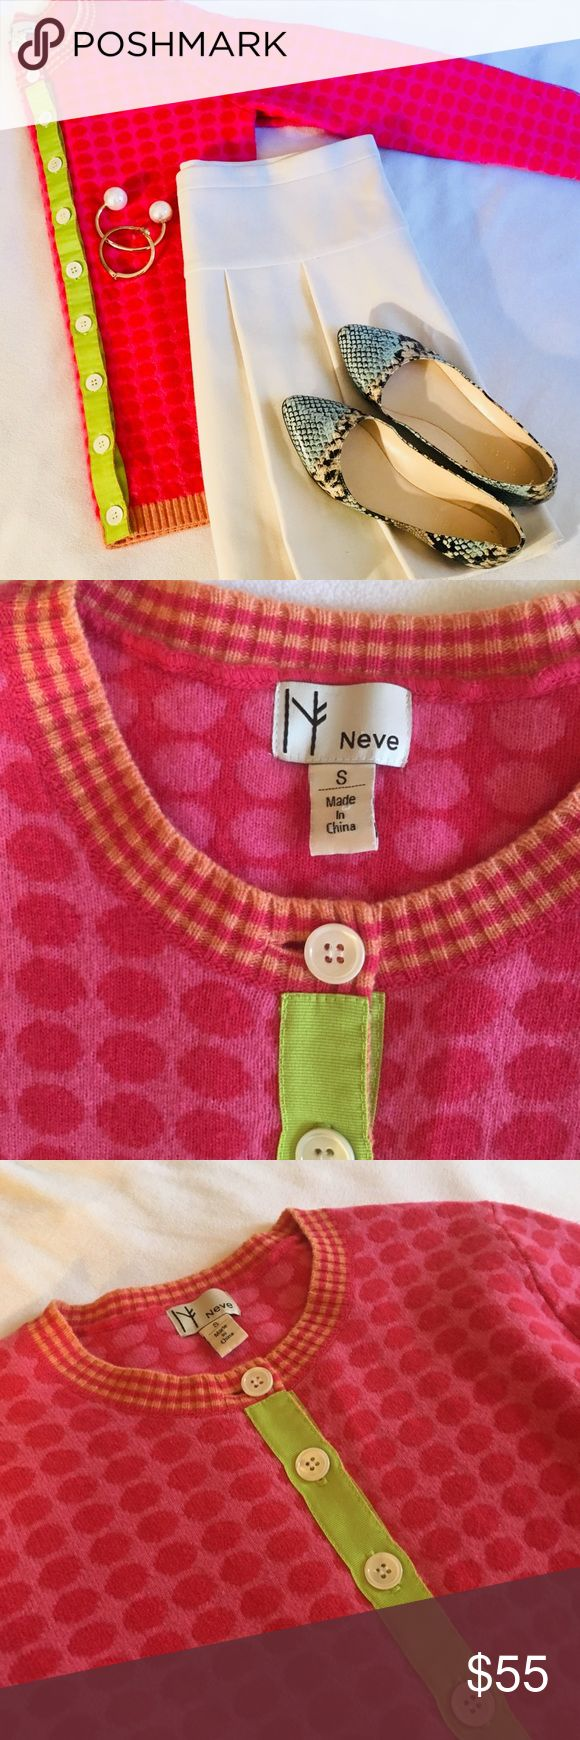 Bebe Pink Circle Cardigan Sweater Super cute high quality luxury sweater in excellent used condition. Features two-toned pink knit printed circle design with orange trim and lime green grosgrain ribbon front panel. Perfect addition to any preppy and stylish wardrobe. Size Small but can easily fit a Medium Neve Sweaters Cardigans